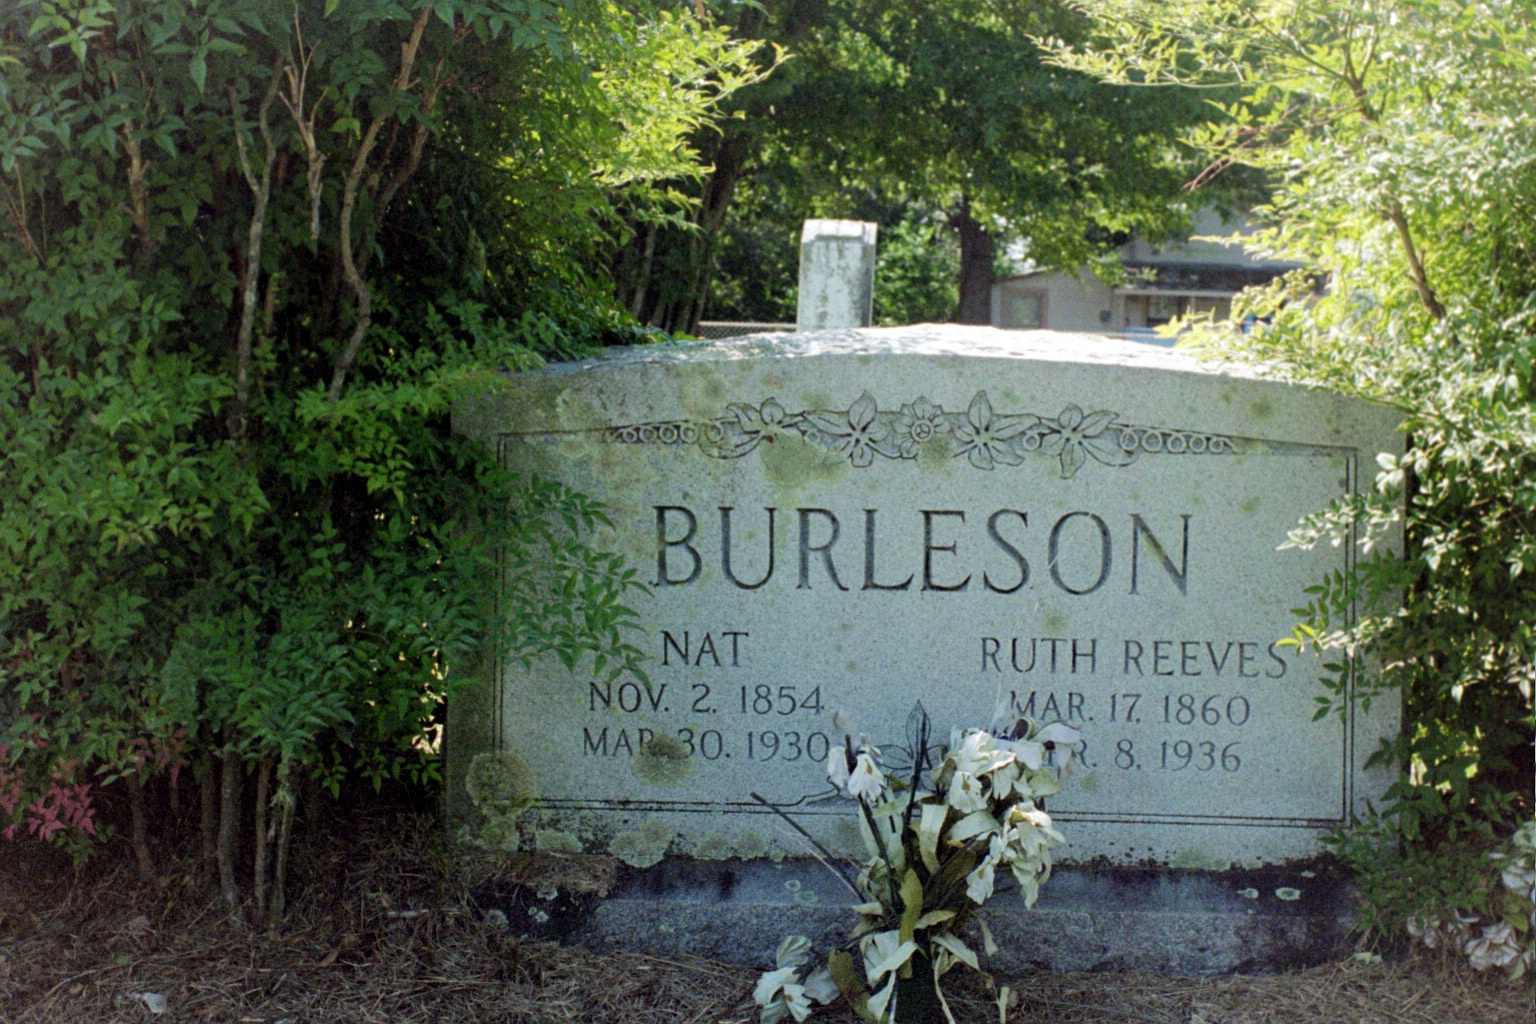 Nathinal Burleson and second wife Ruth Reeves Marker in Pt.Enterprize, Mexia,TX.